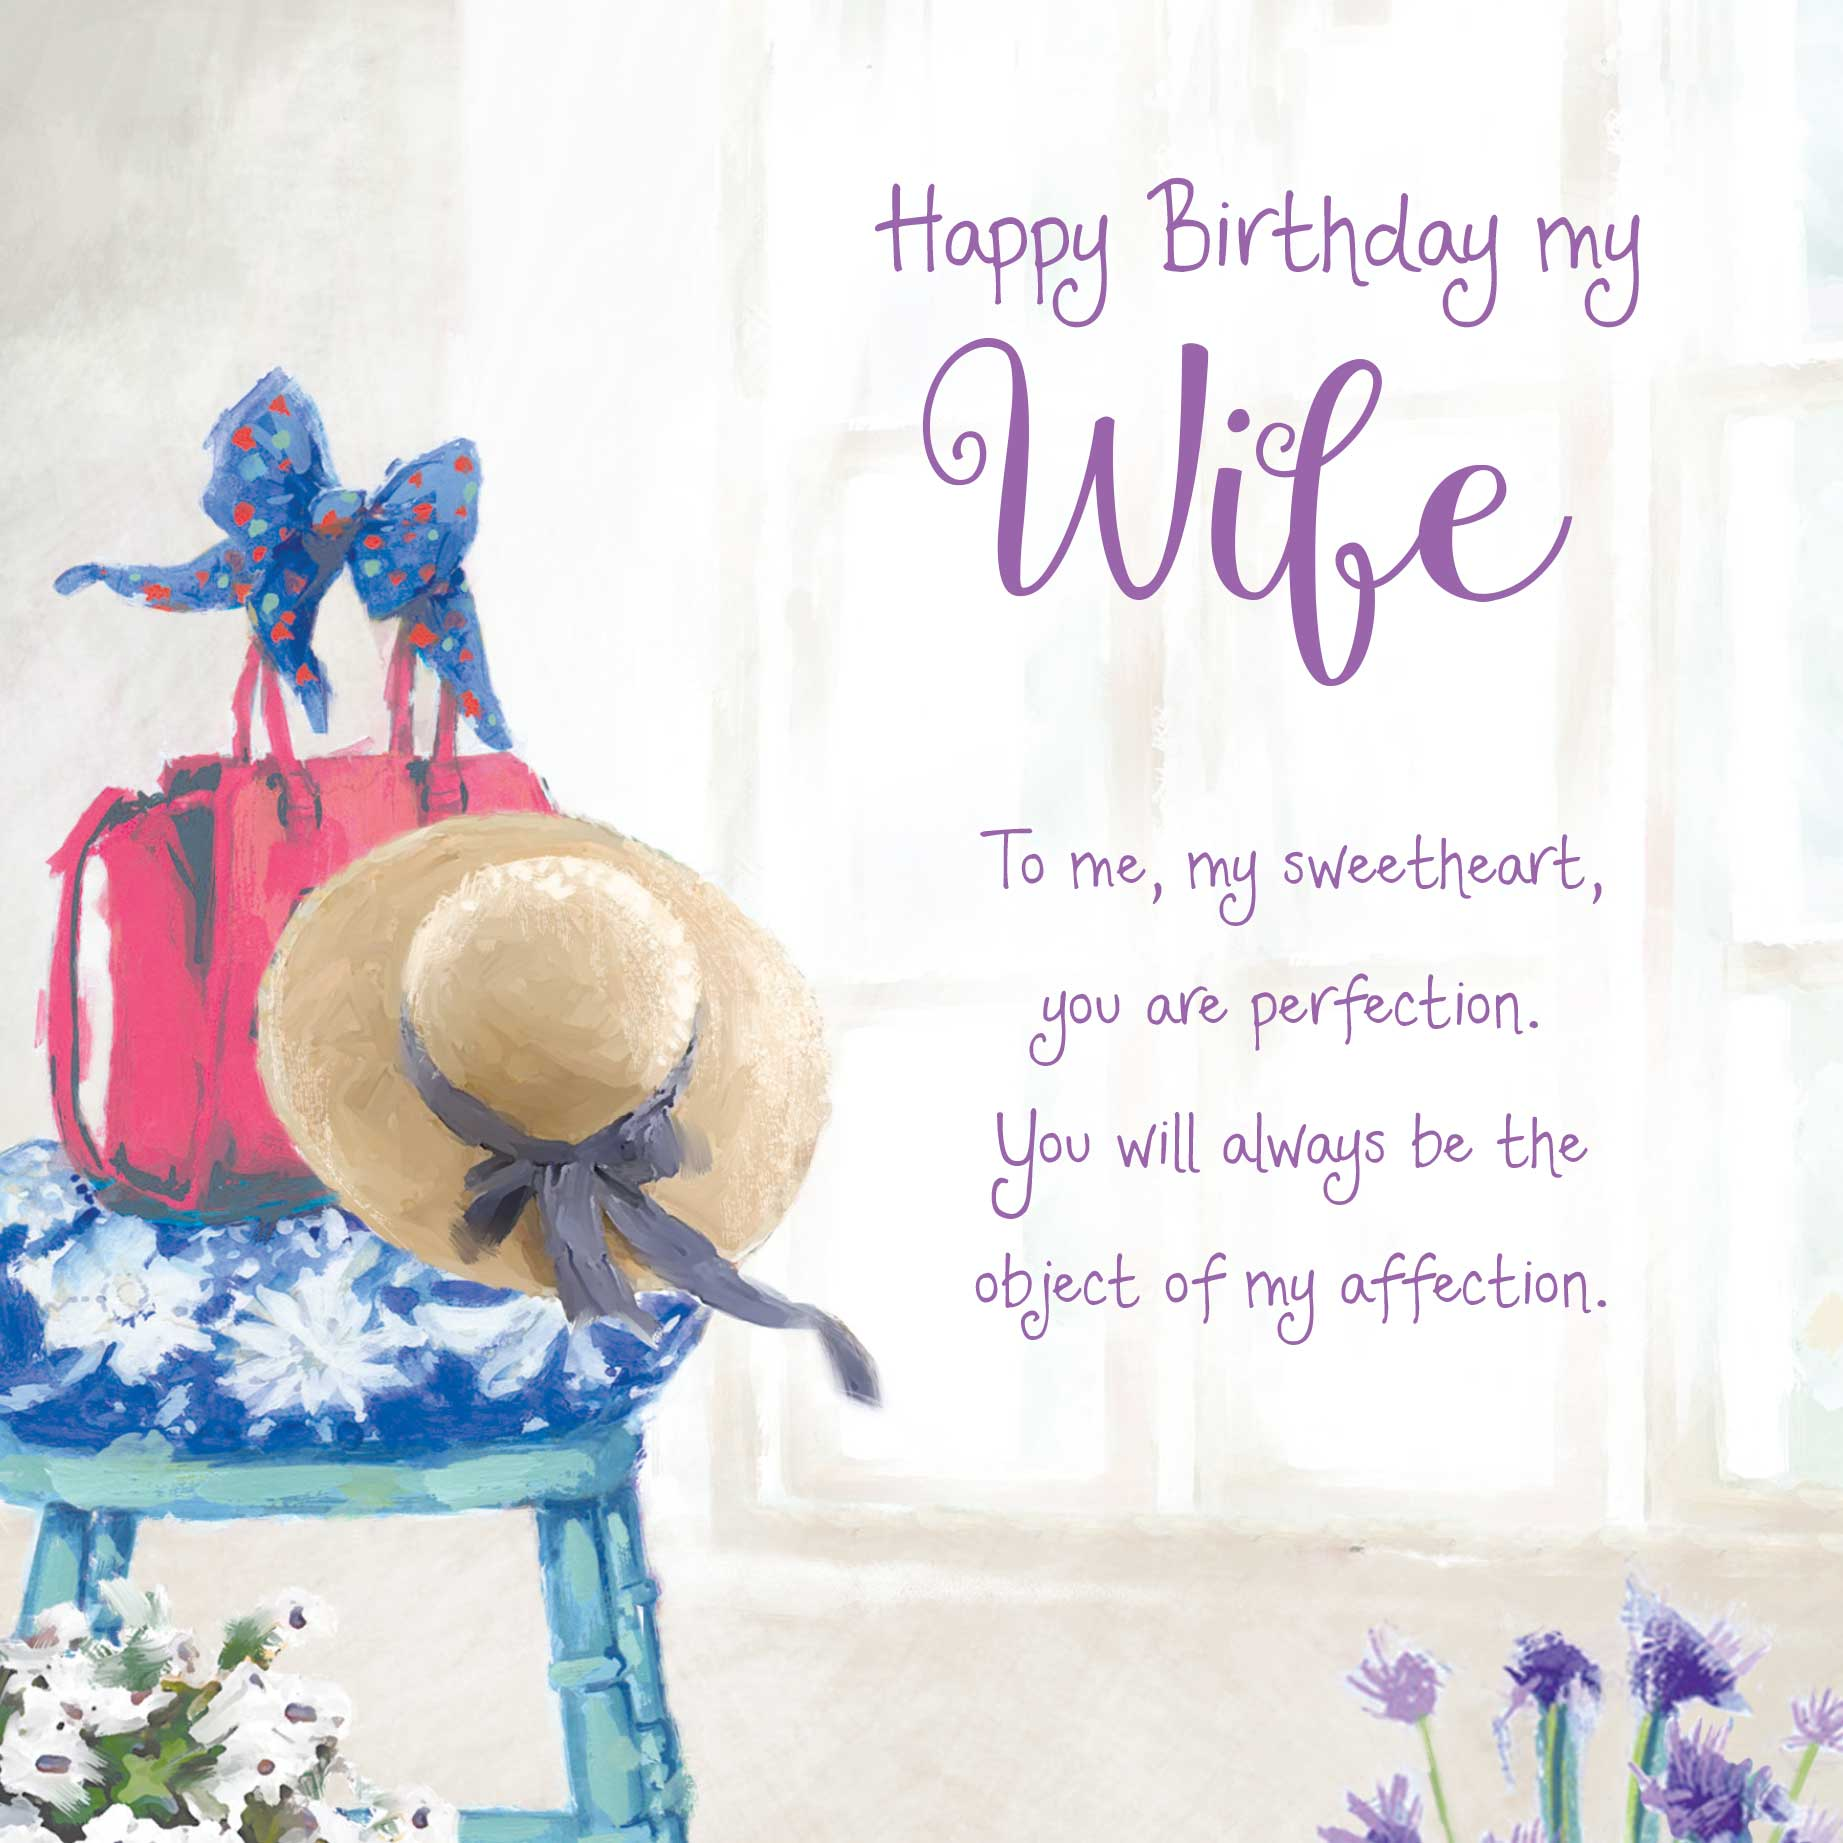 Luxury birthday cards for wife images laughterisaleap words of warmth wife birthday card garlanna greeting cards bookmarktalkfo Images